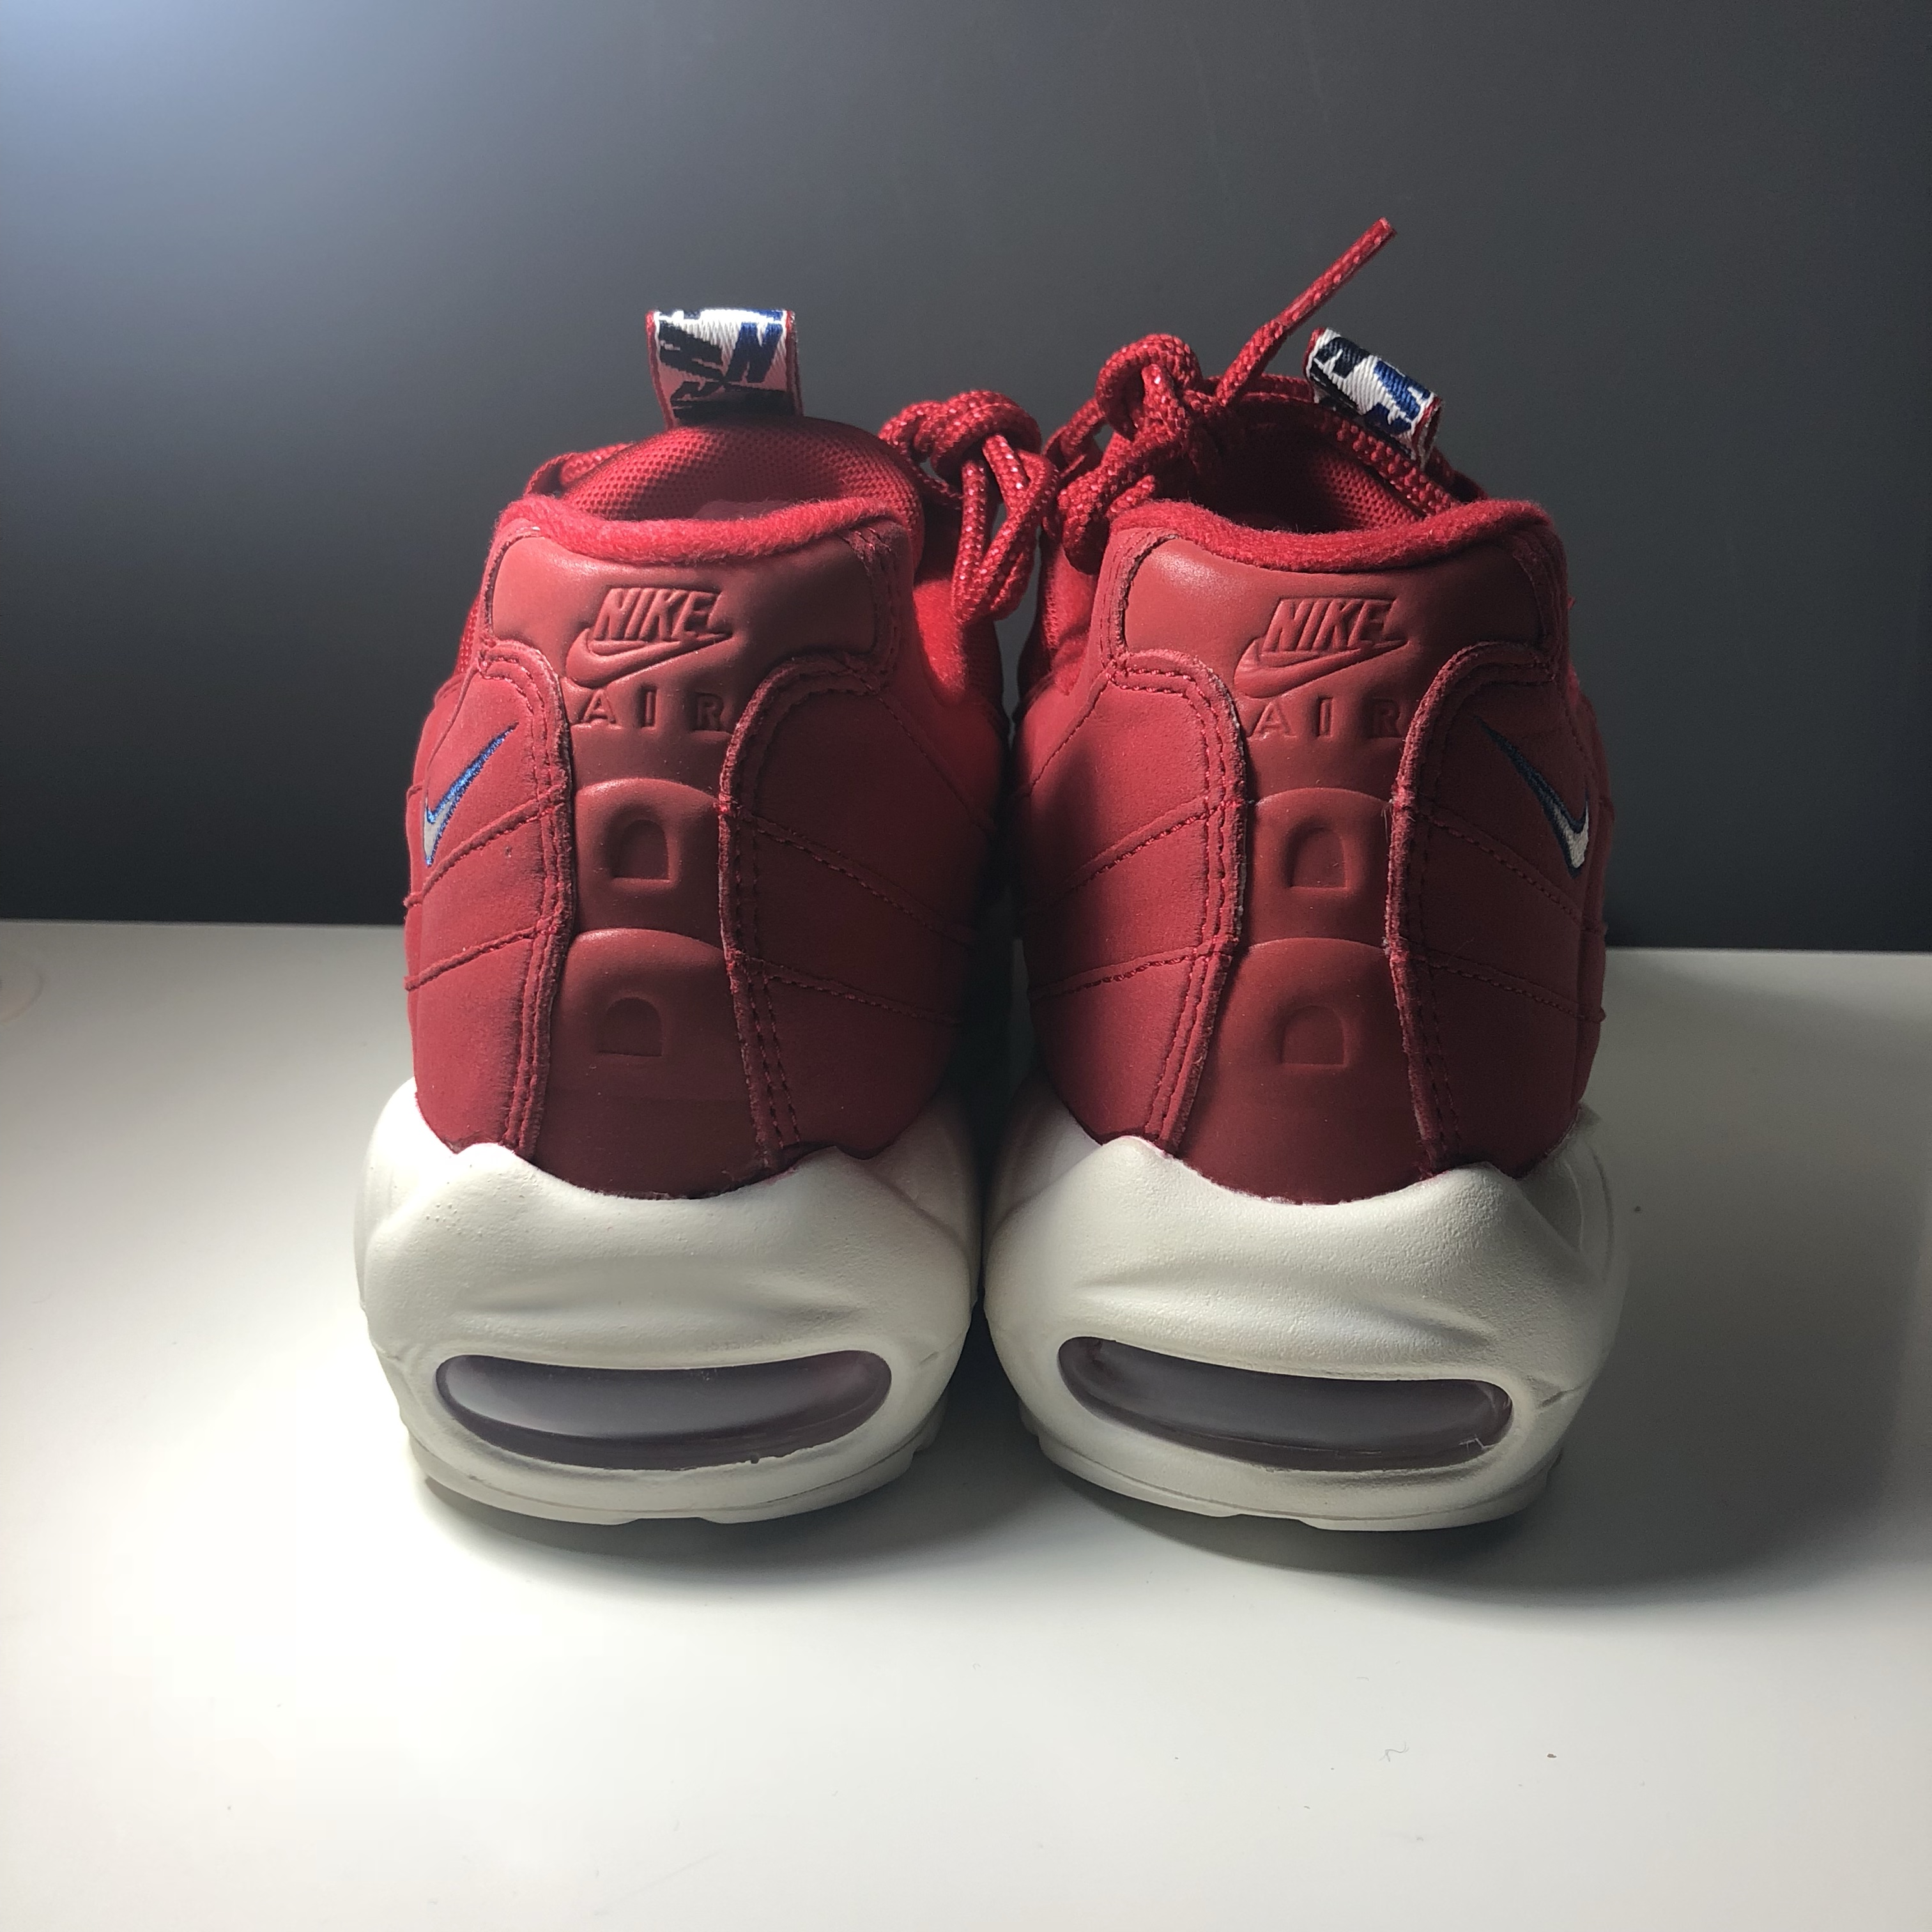 NIKE AIR MAX 95 TT 'TAPED' PACK RED WHITE SIZE 8.5 Depop